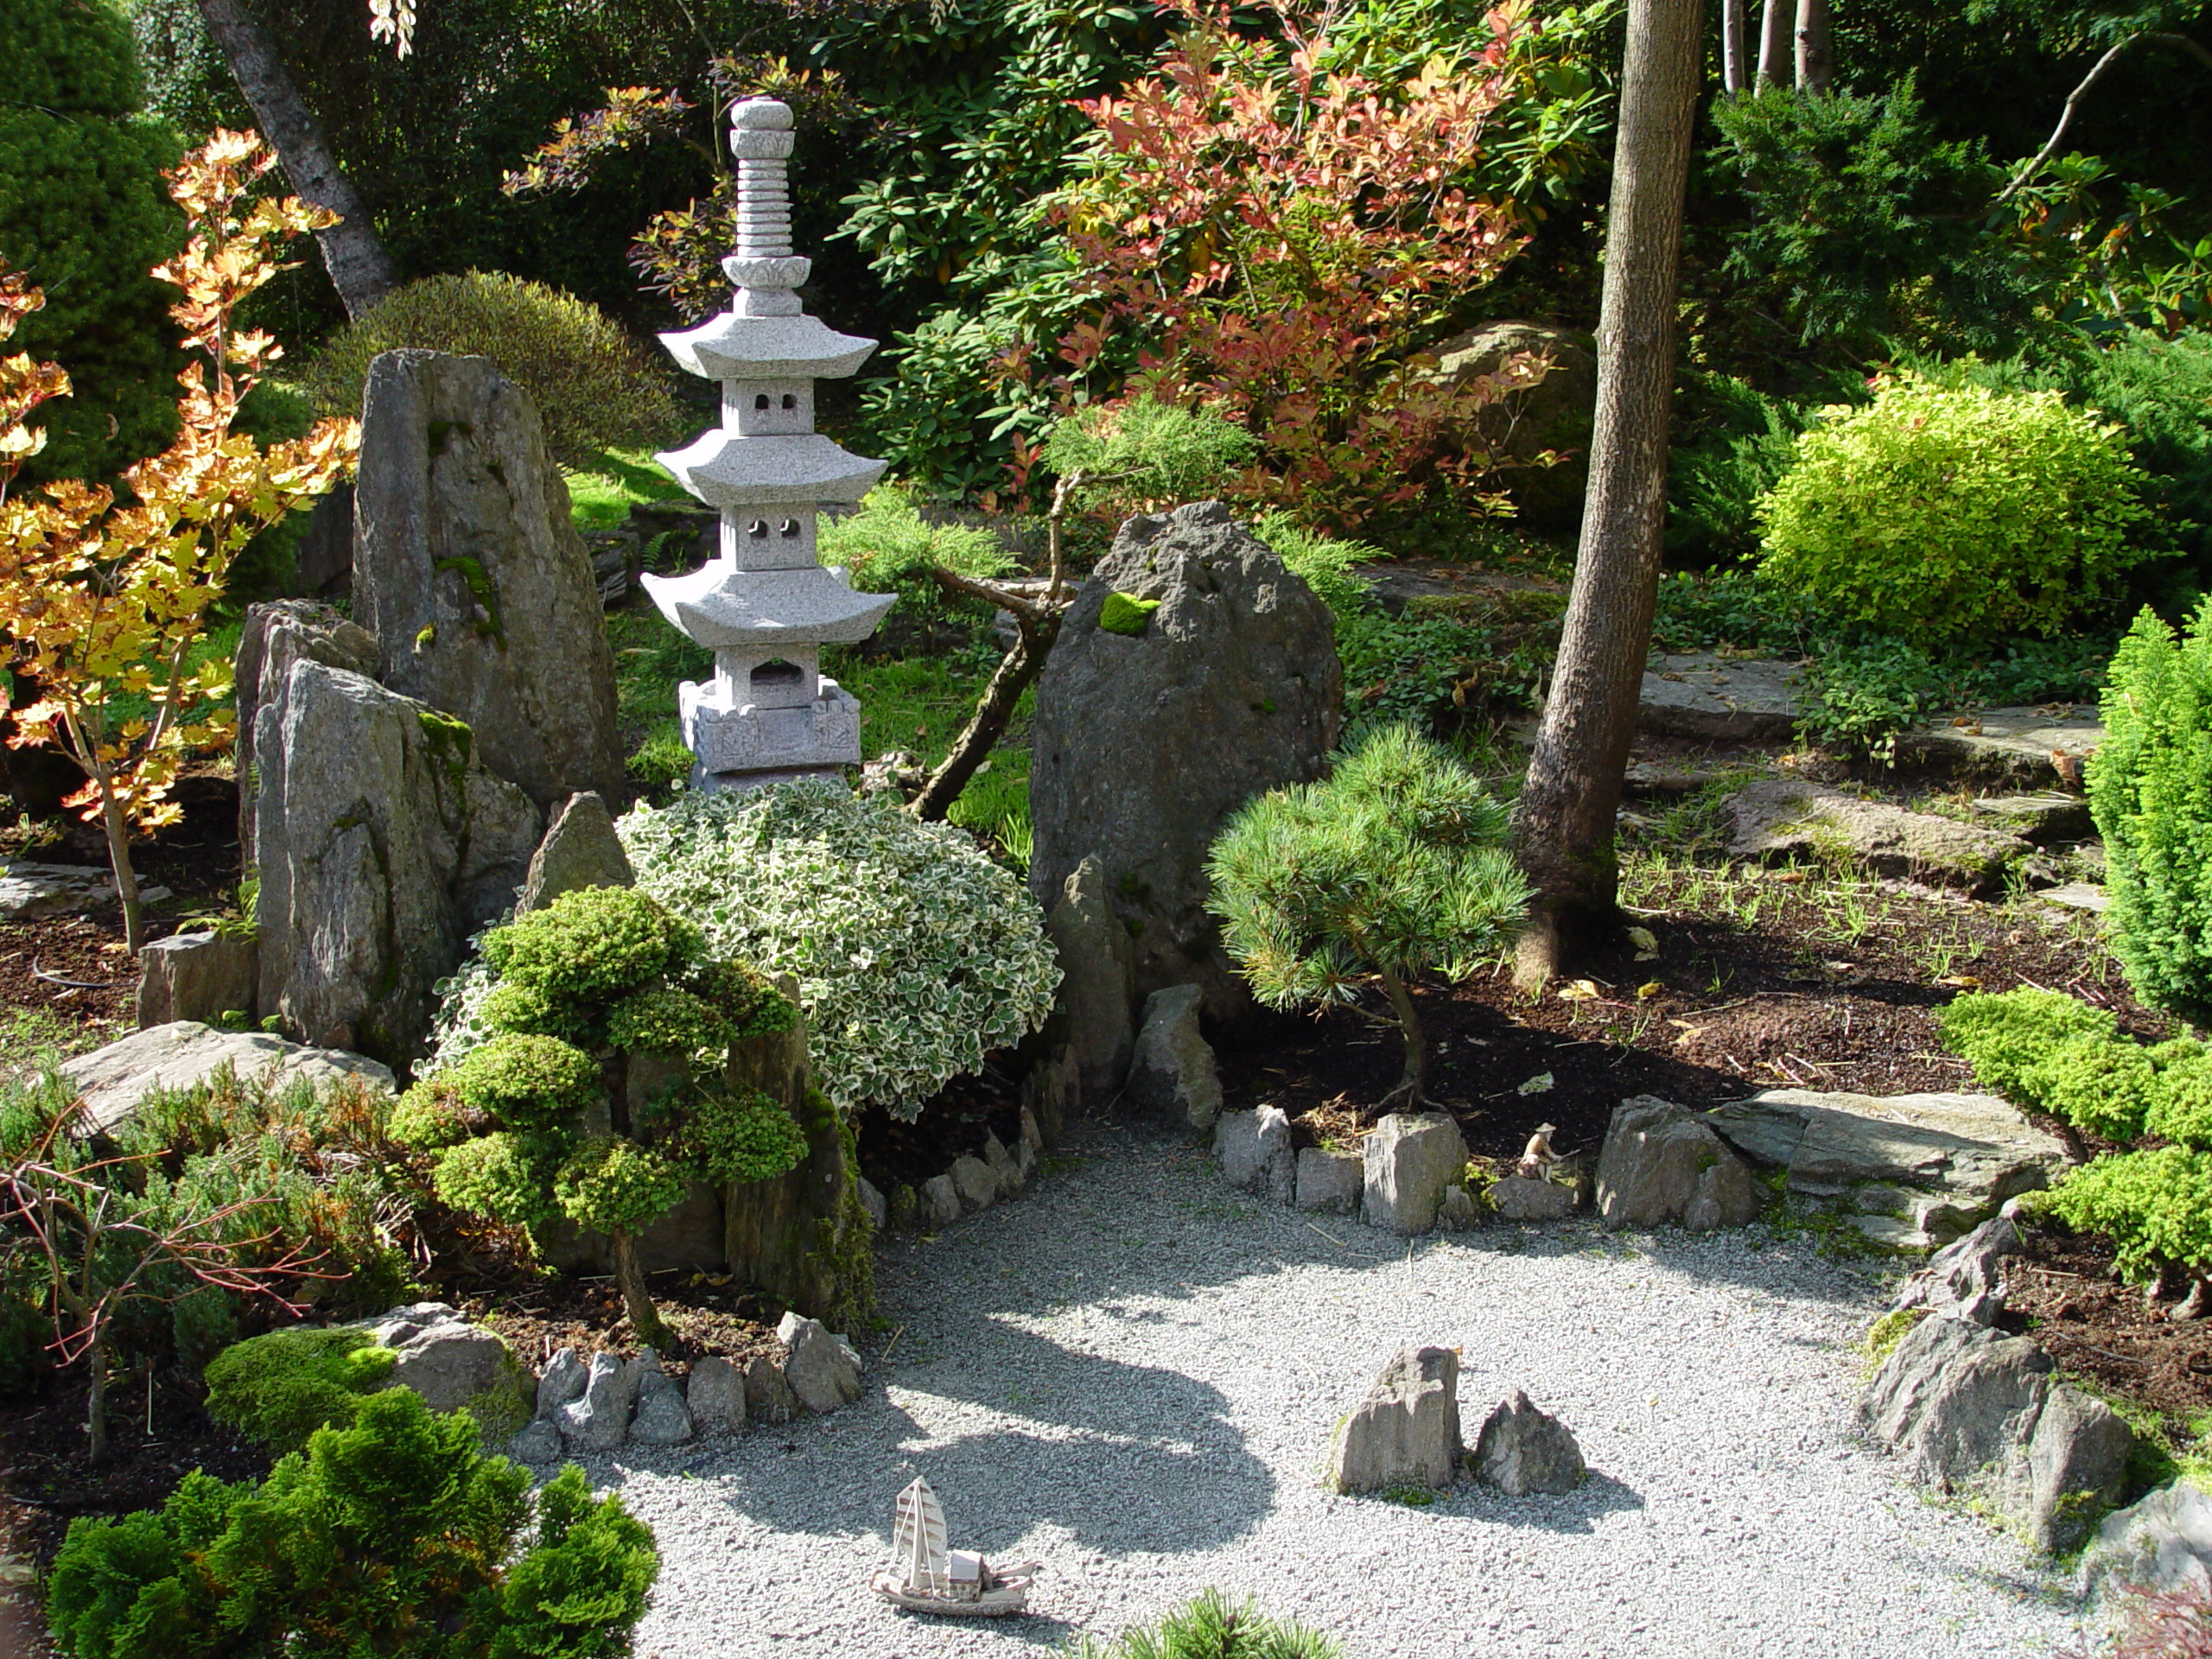 FileJapanese Garden Jarkw Poland 2 14013jpg